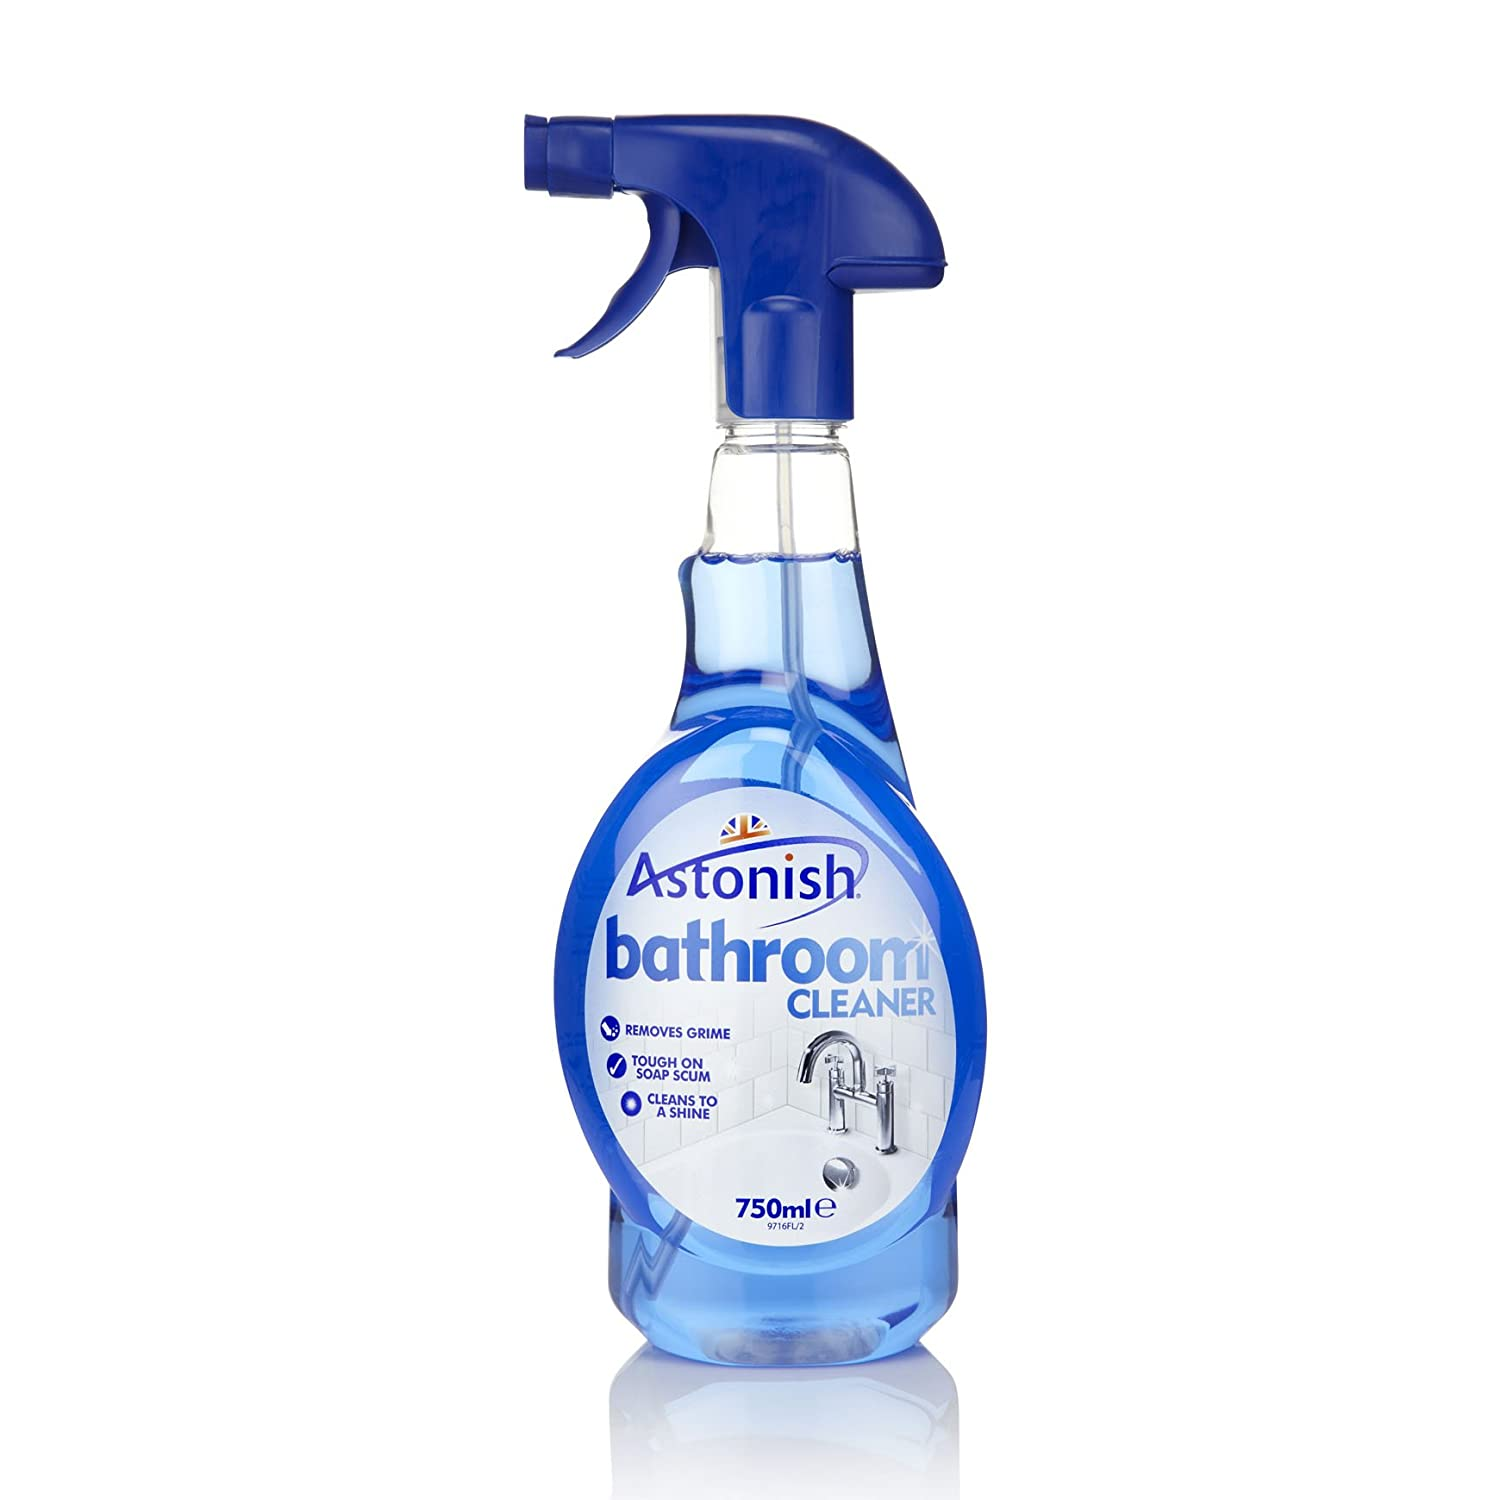 Zest bathroom cleaner - Astonish Bathroom Cleaner 750ml Spray Bottle